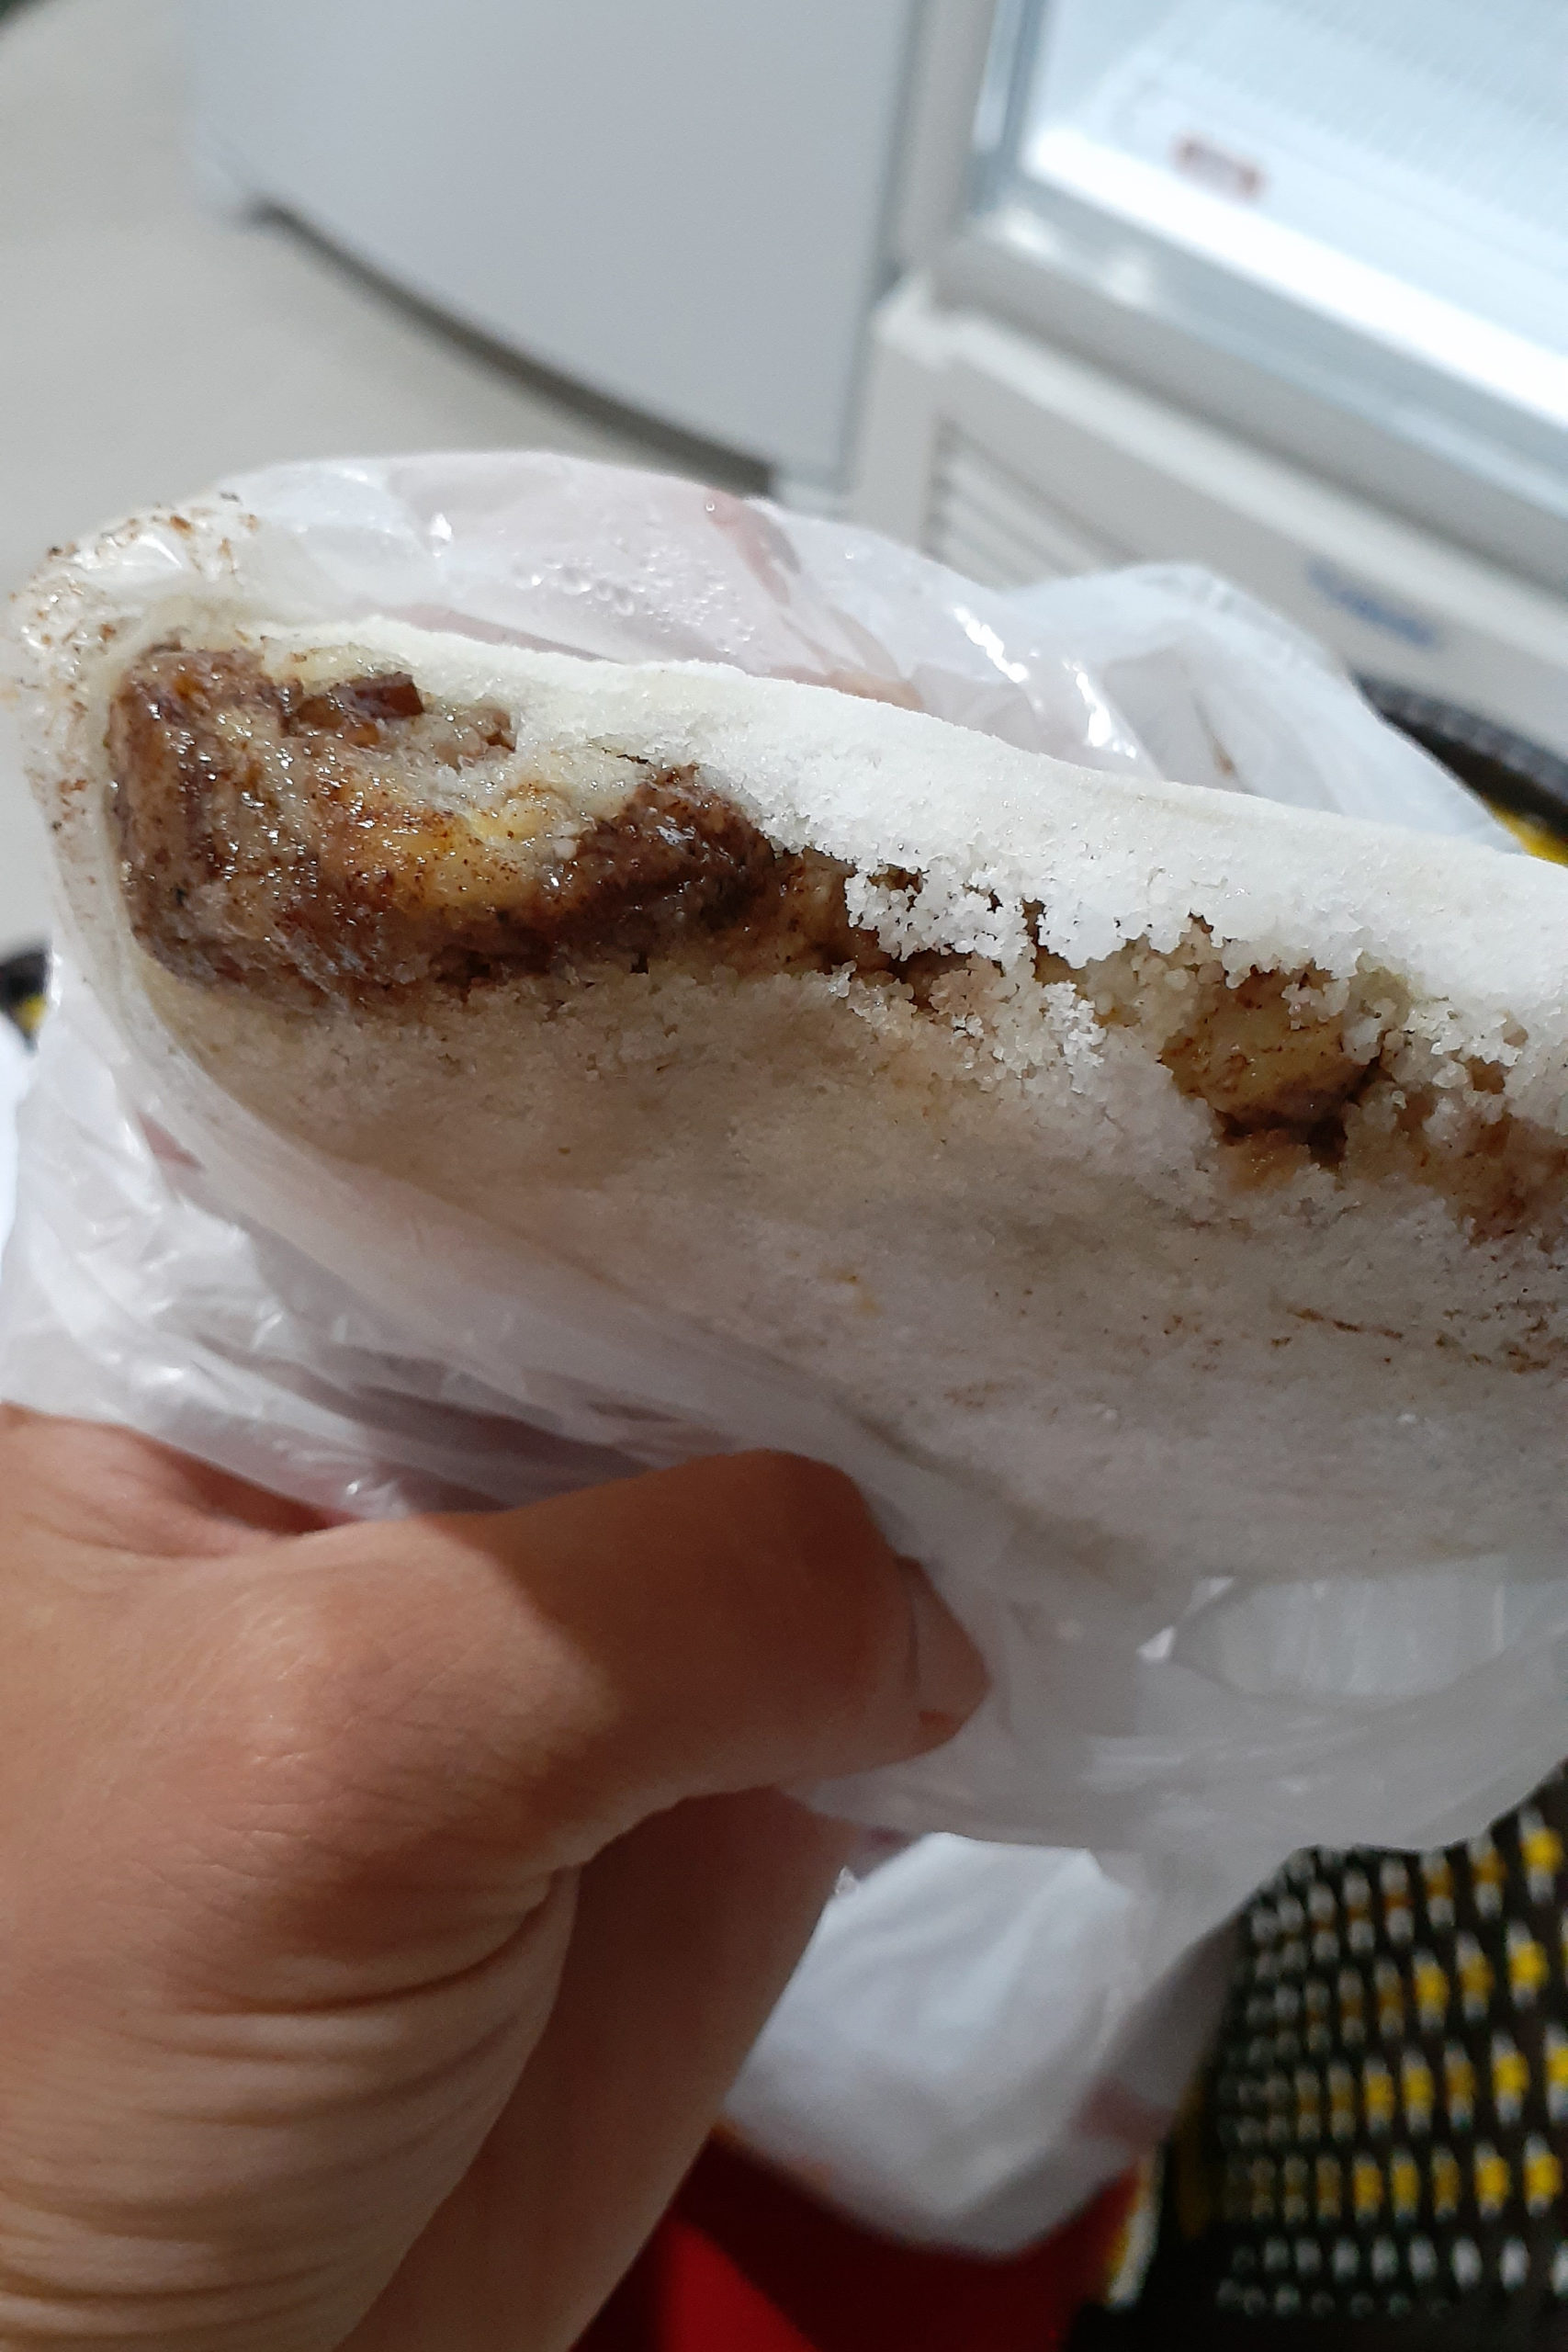 Banana, cinnamon and chocolate tapioca, Maceió